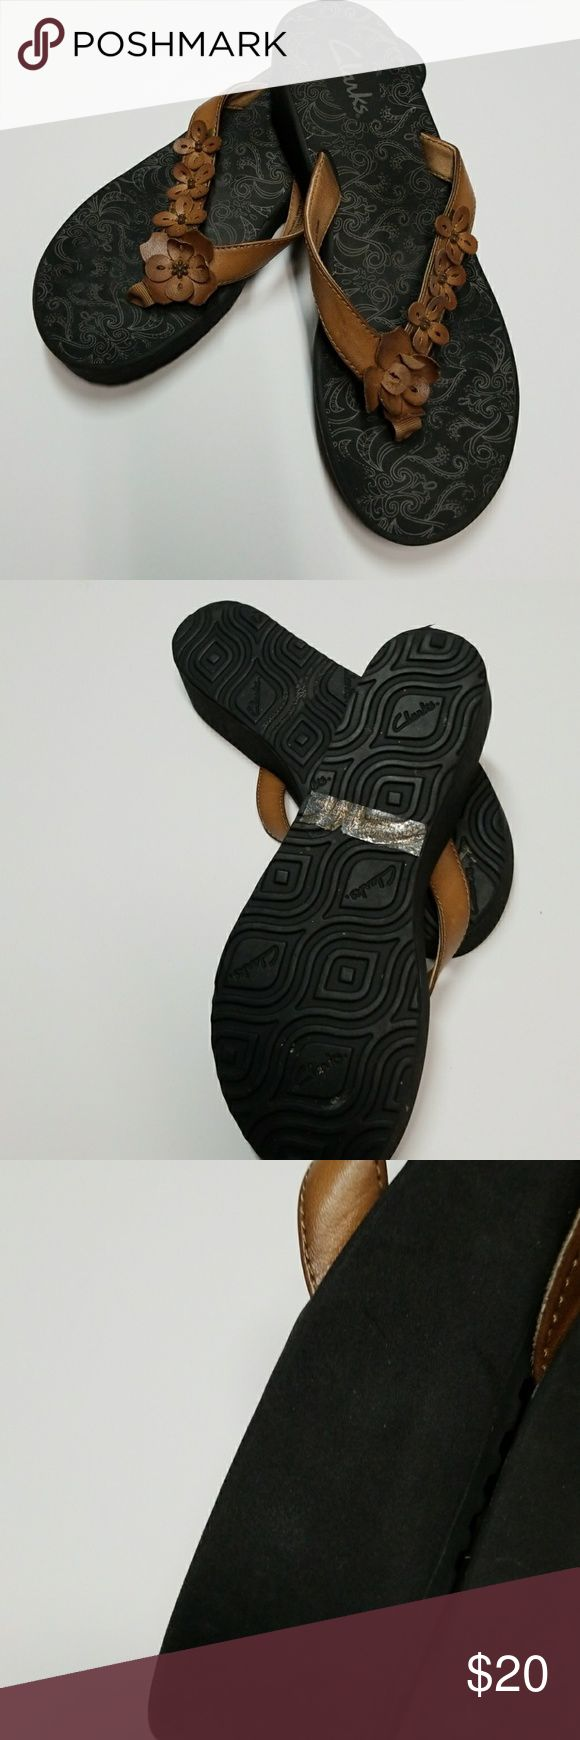 "Clarks Flip Flops Brown Size 9 Beach Pool Shoes Clarks Flip Flops Brown  Size 9  Beach Pool Knock around Shoes Well made lined Straps Excellent Condition Heel Approx  1.5 "" back and 1"" front Shoes"